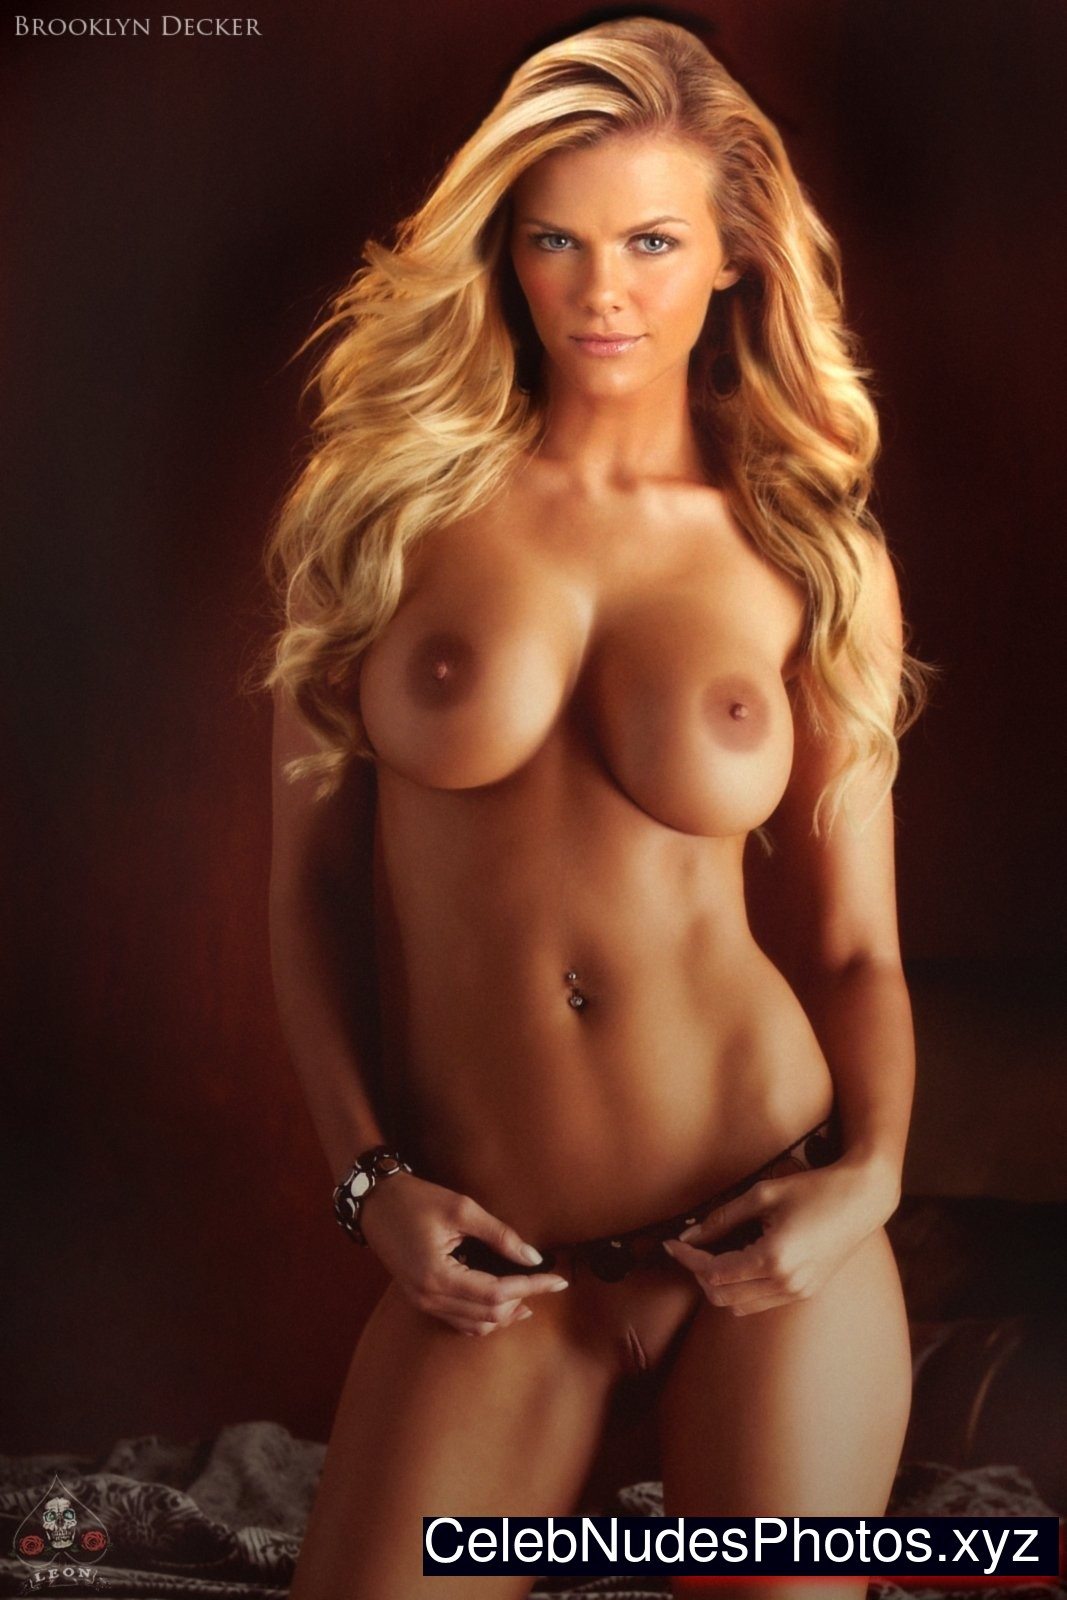 nude pic of brooklyn decker